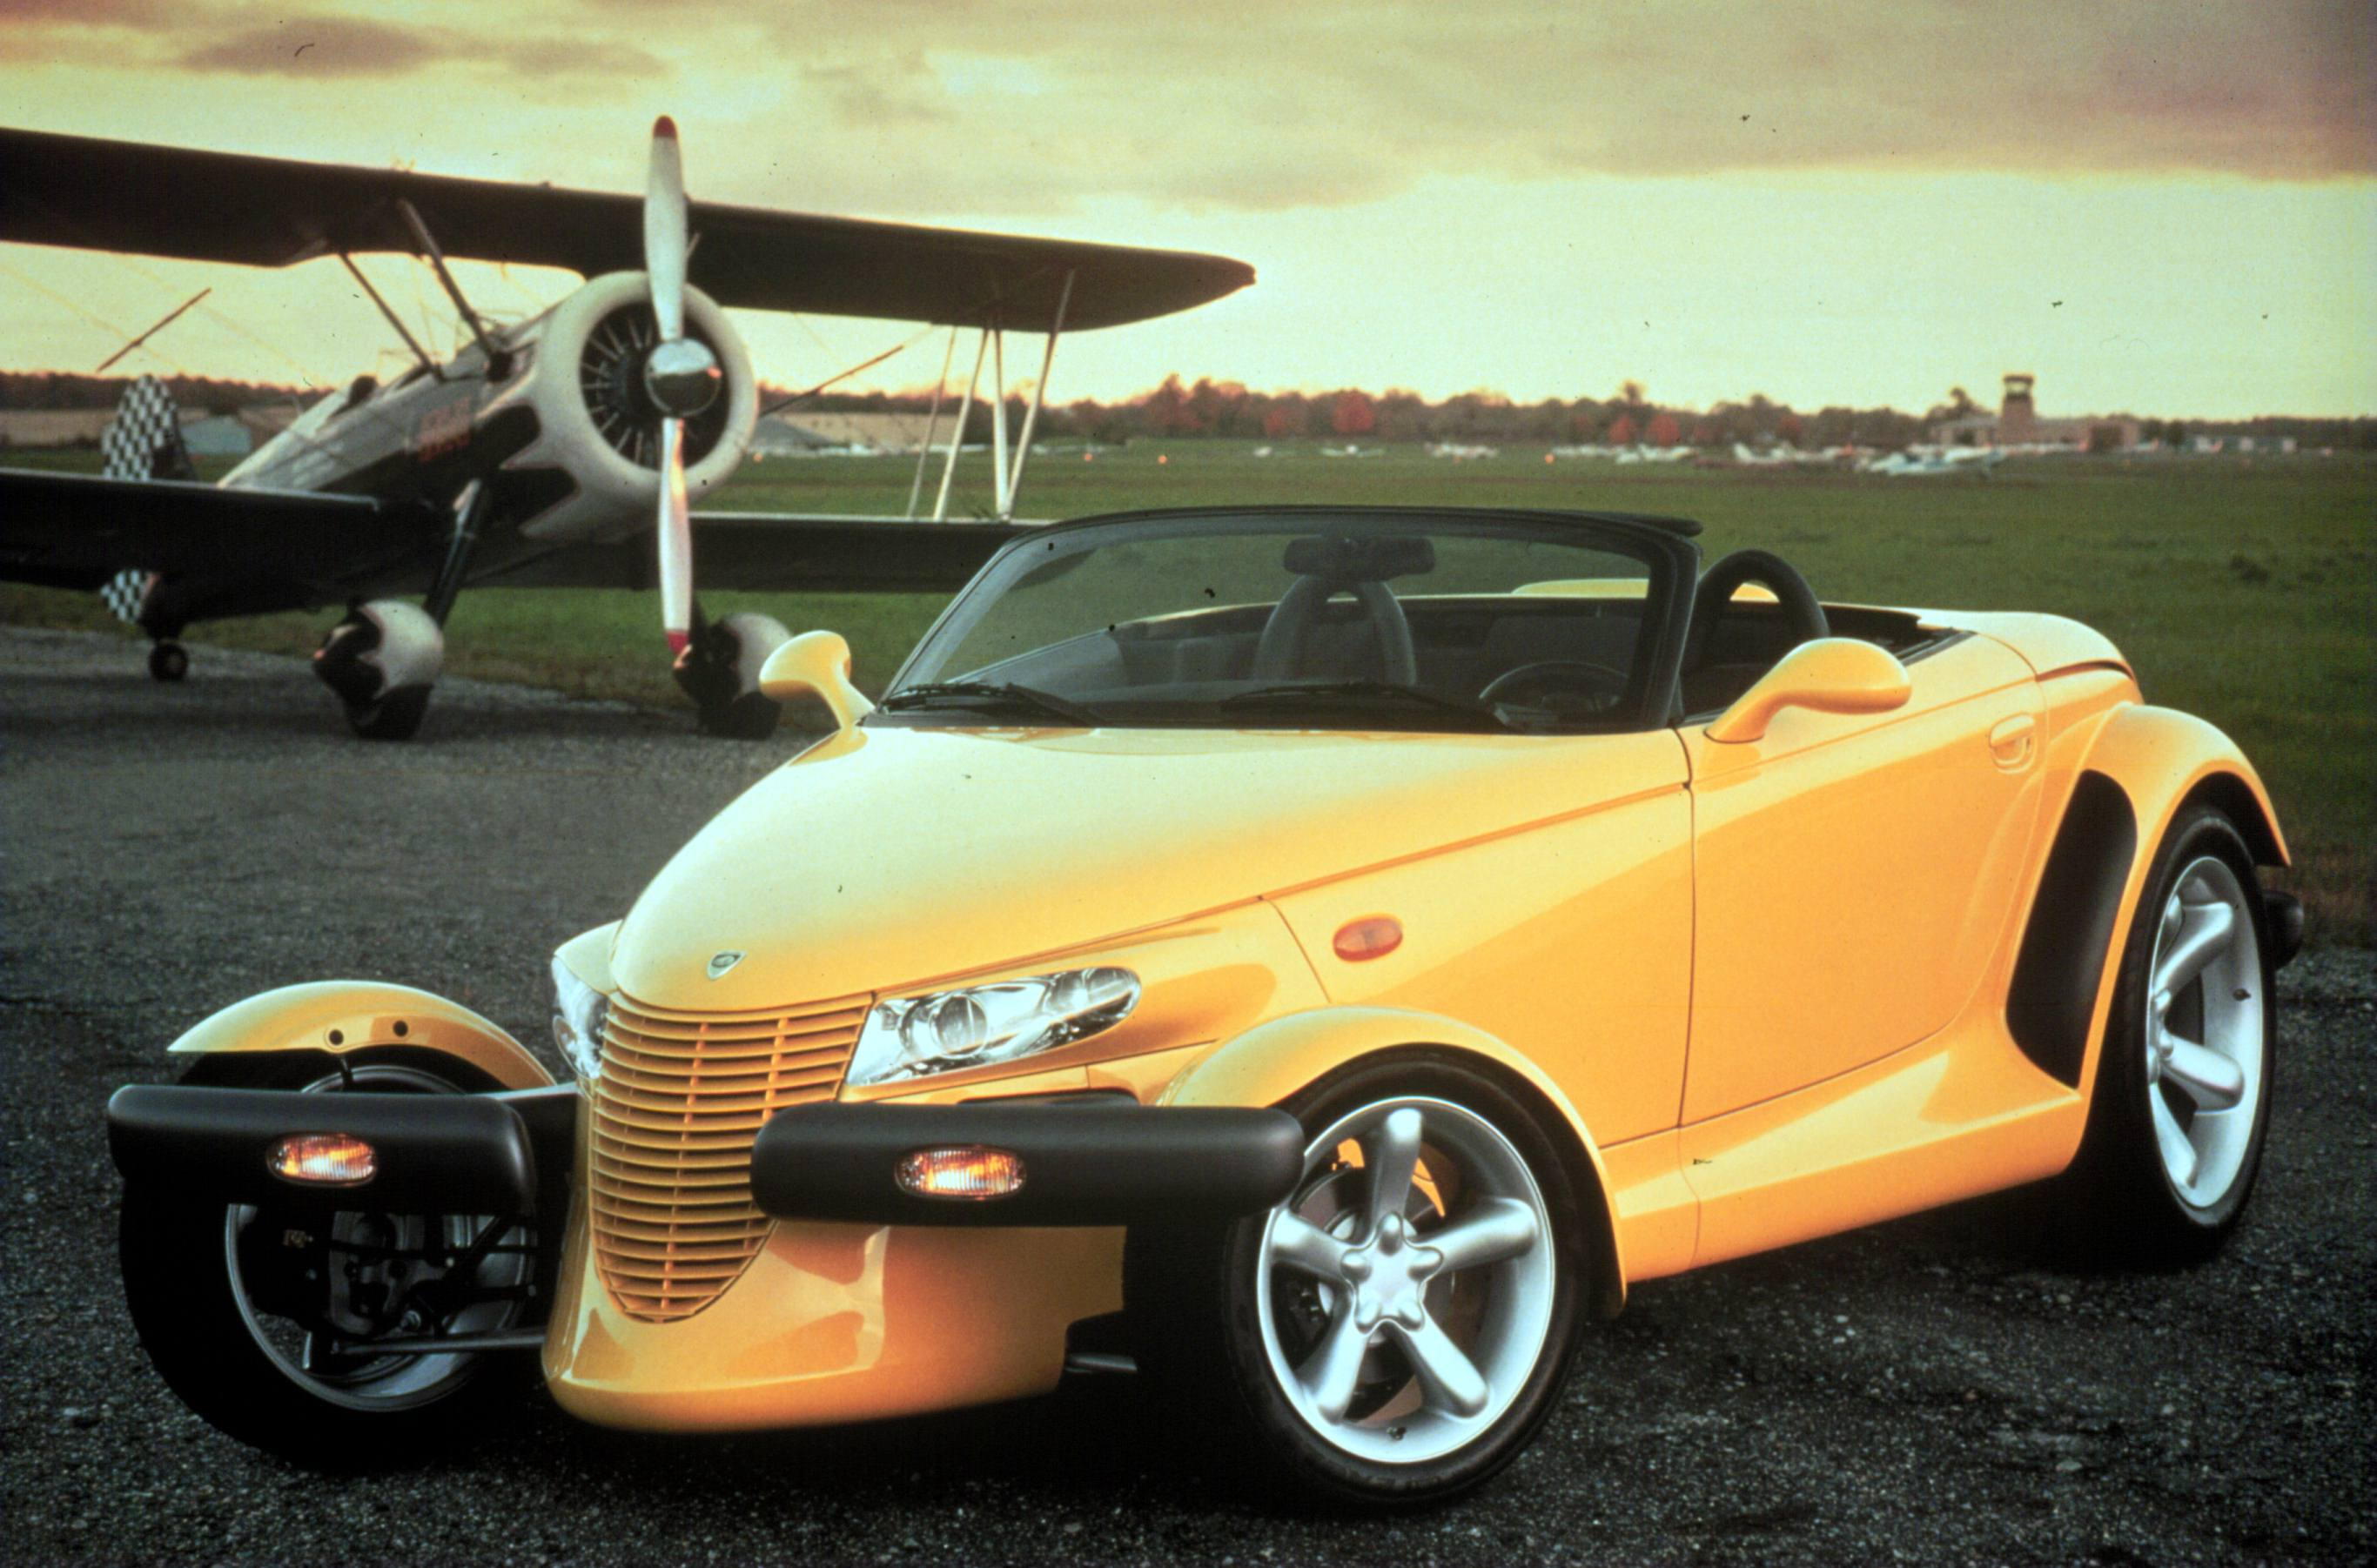 10 Cars That Probably Should Not Have Hit the Road - Page 7